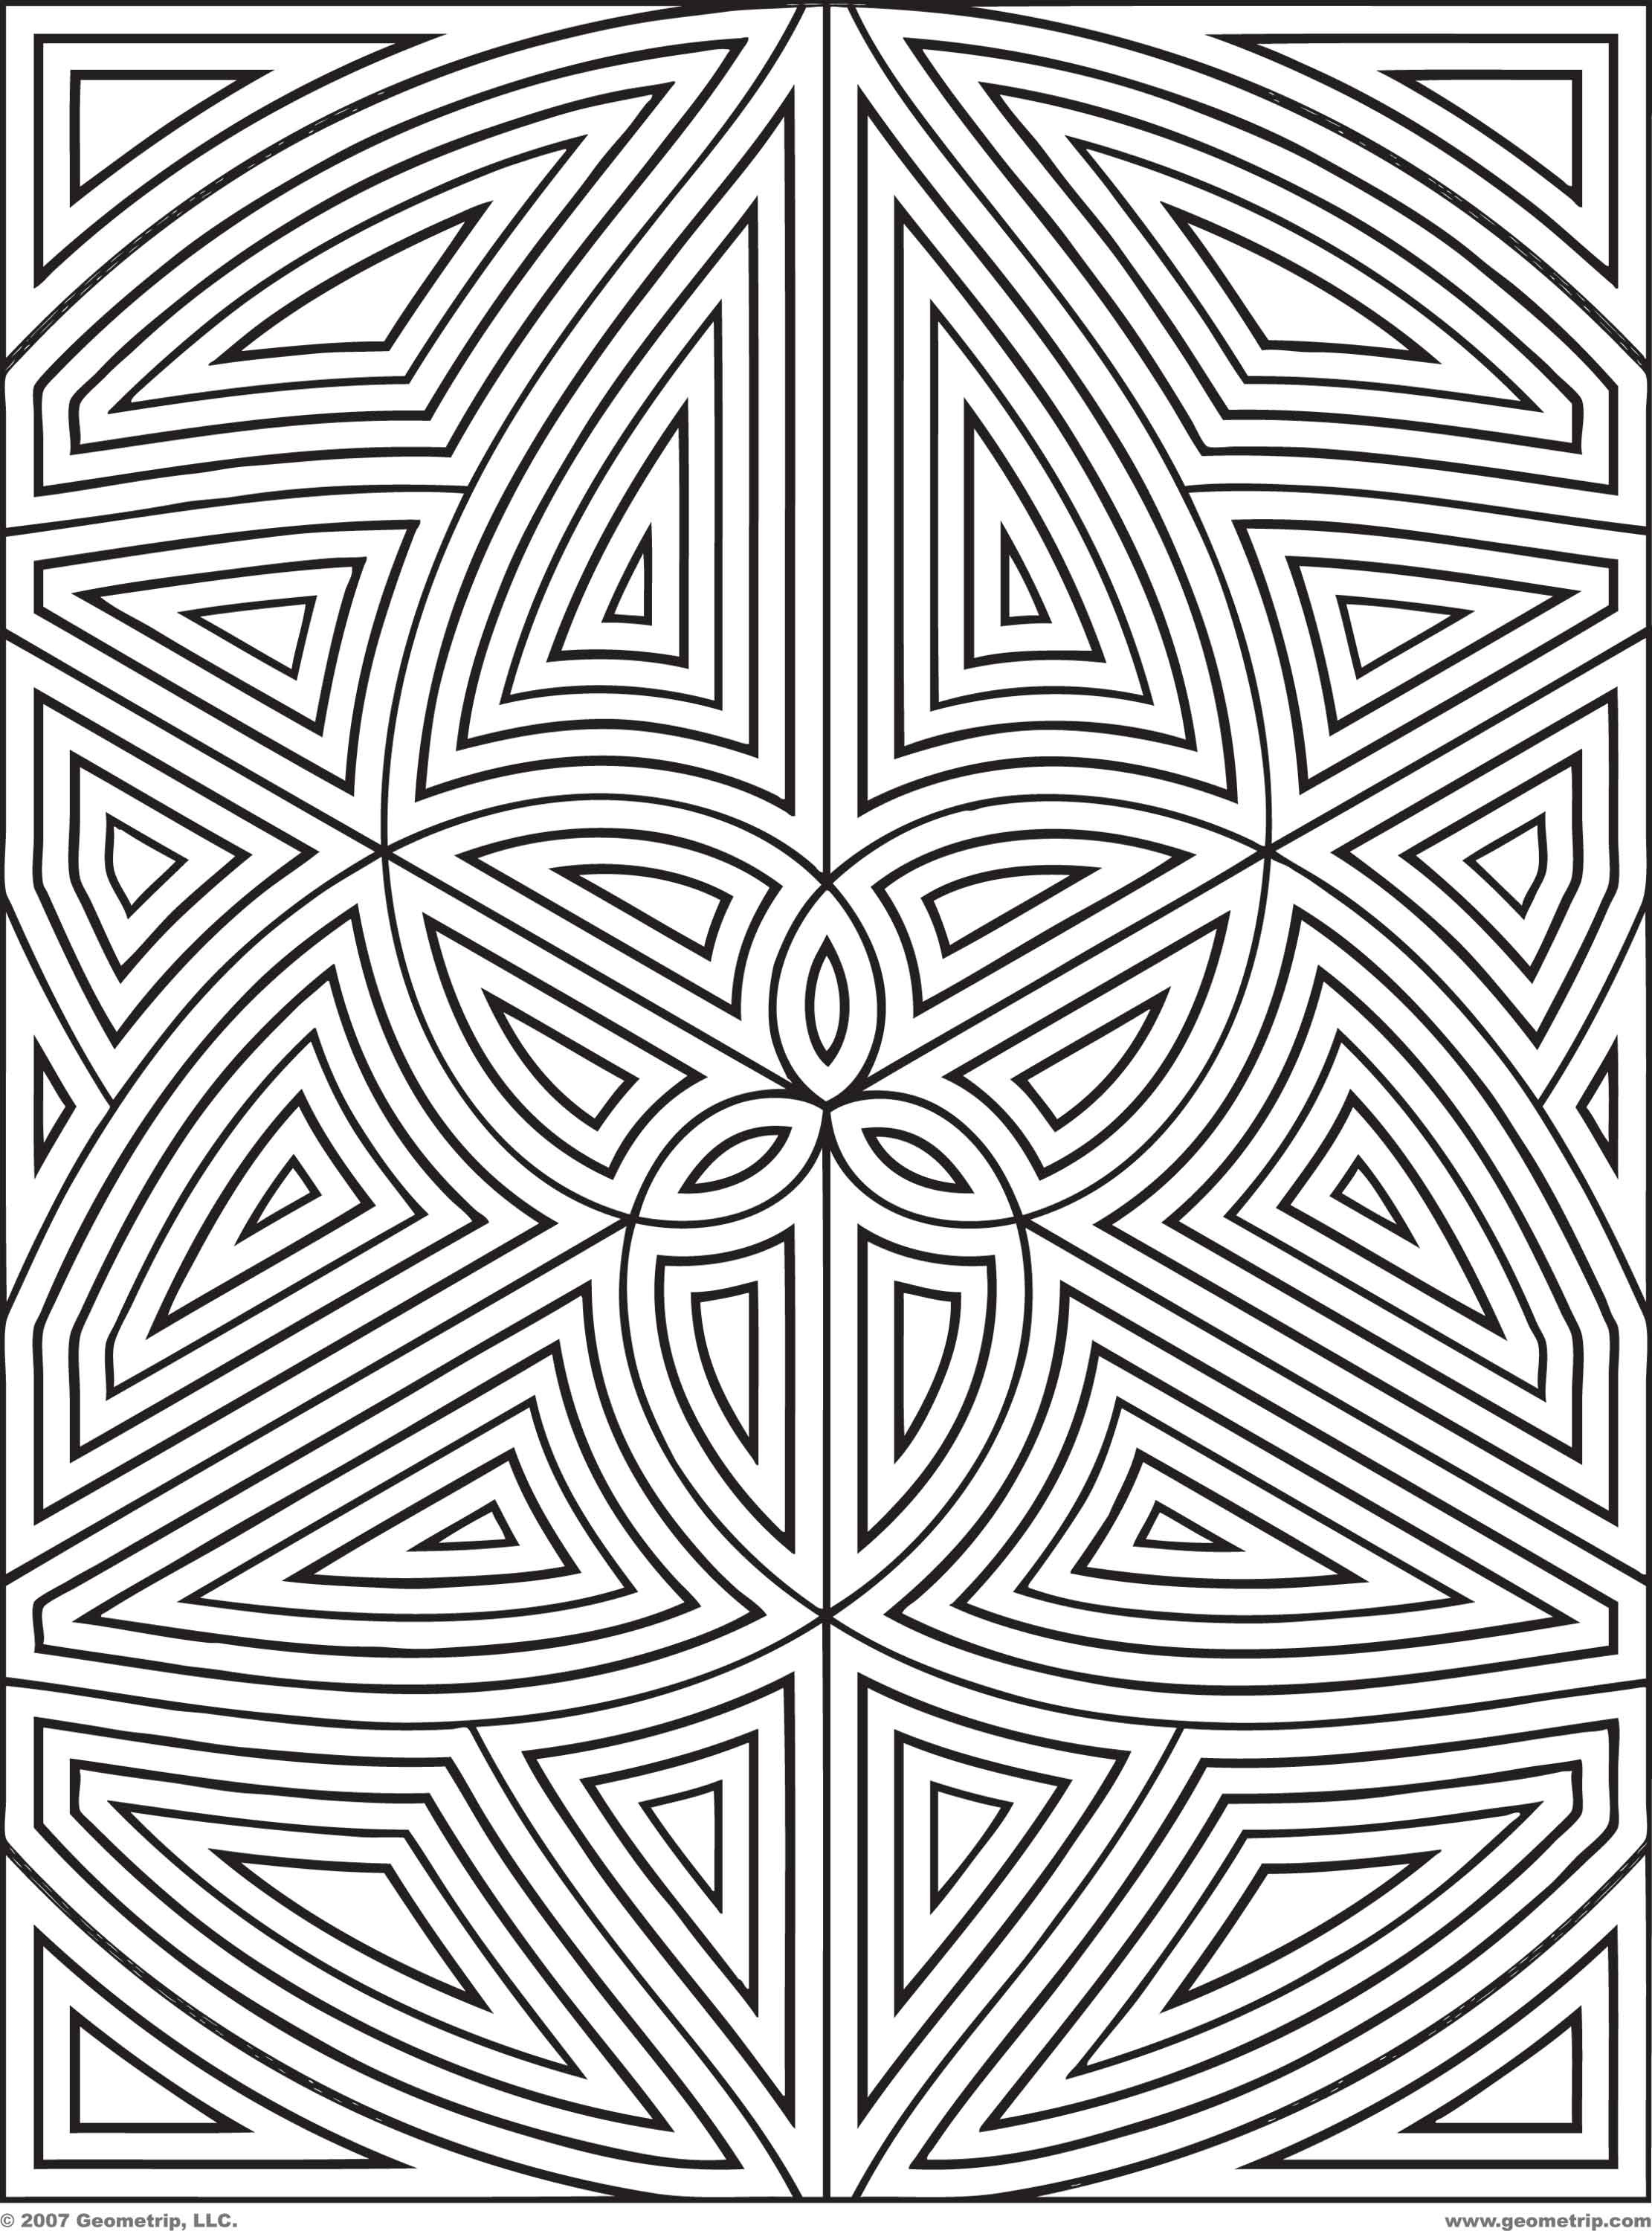 Best ideas about Geometric Coloring Pages For Adults . Save or Pin Many Geometric Pattern Coloring Pages for Adults Now.